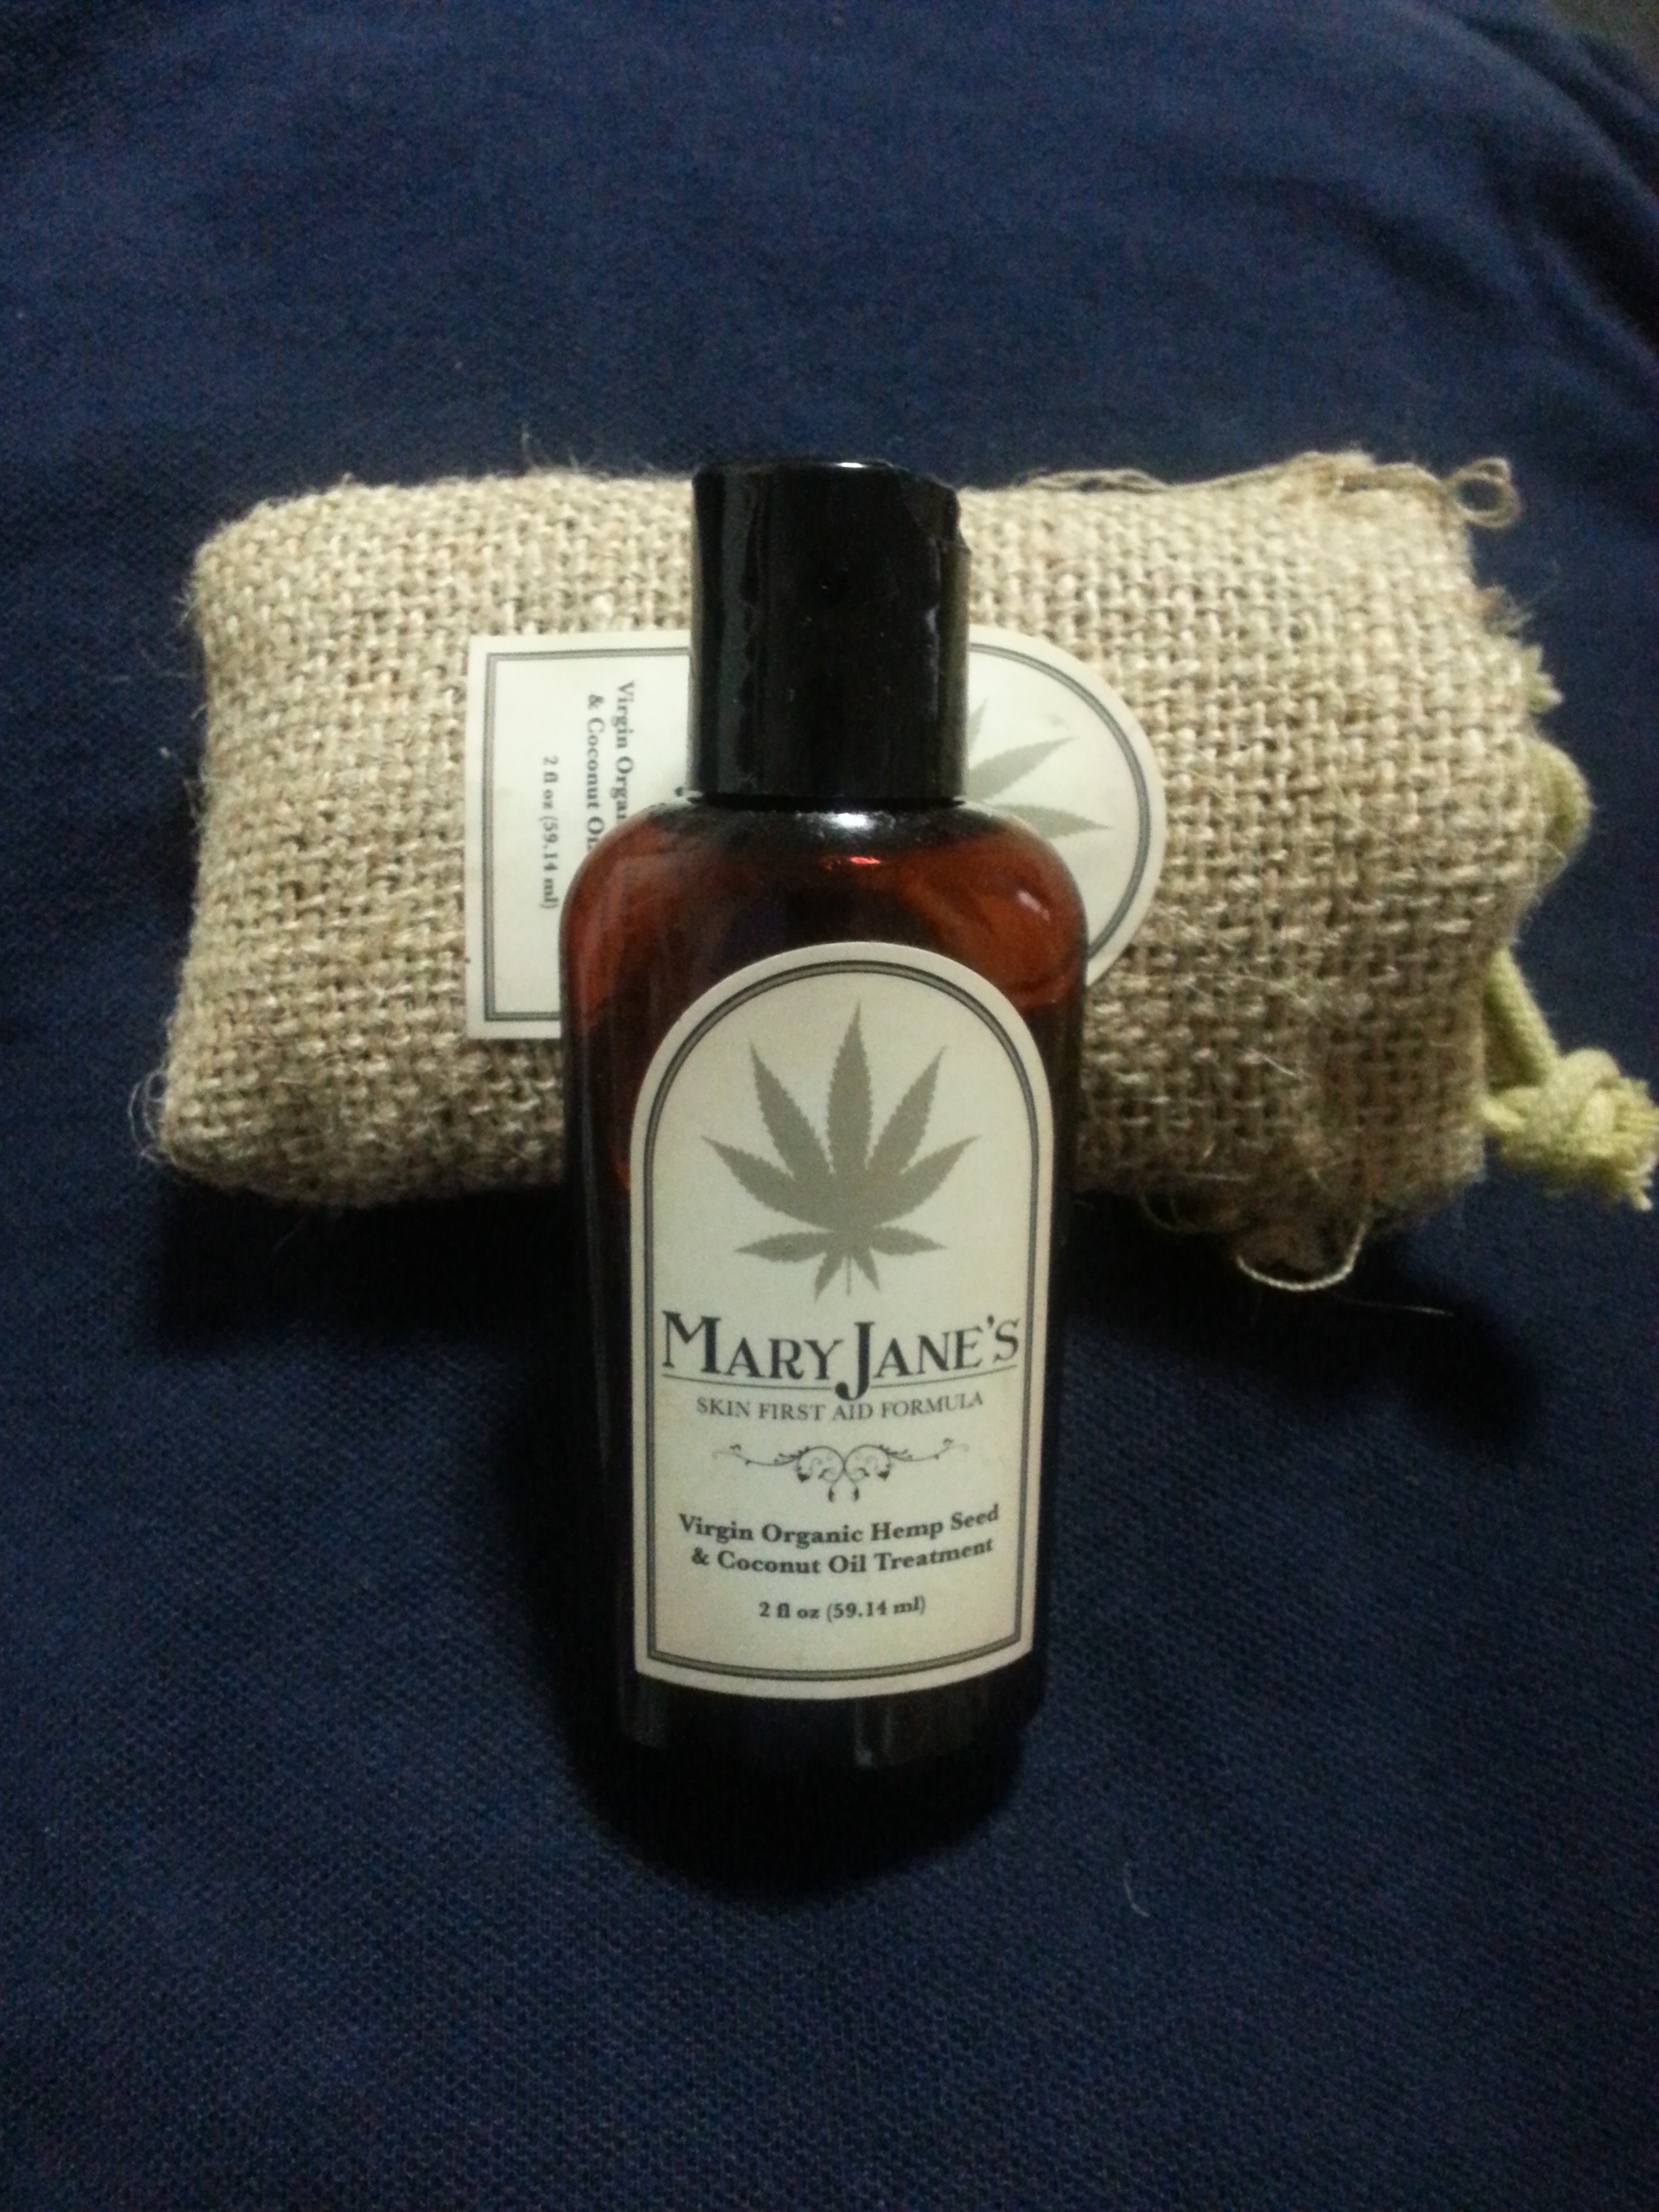 Mary Jane's Skin First Aid Formula